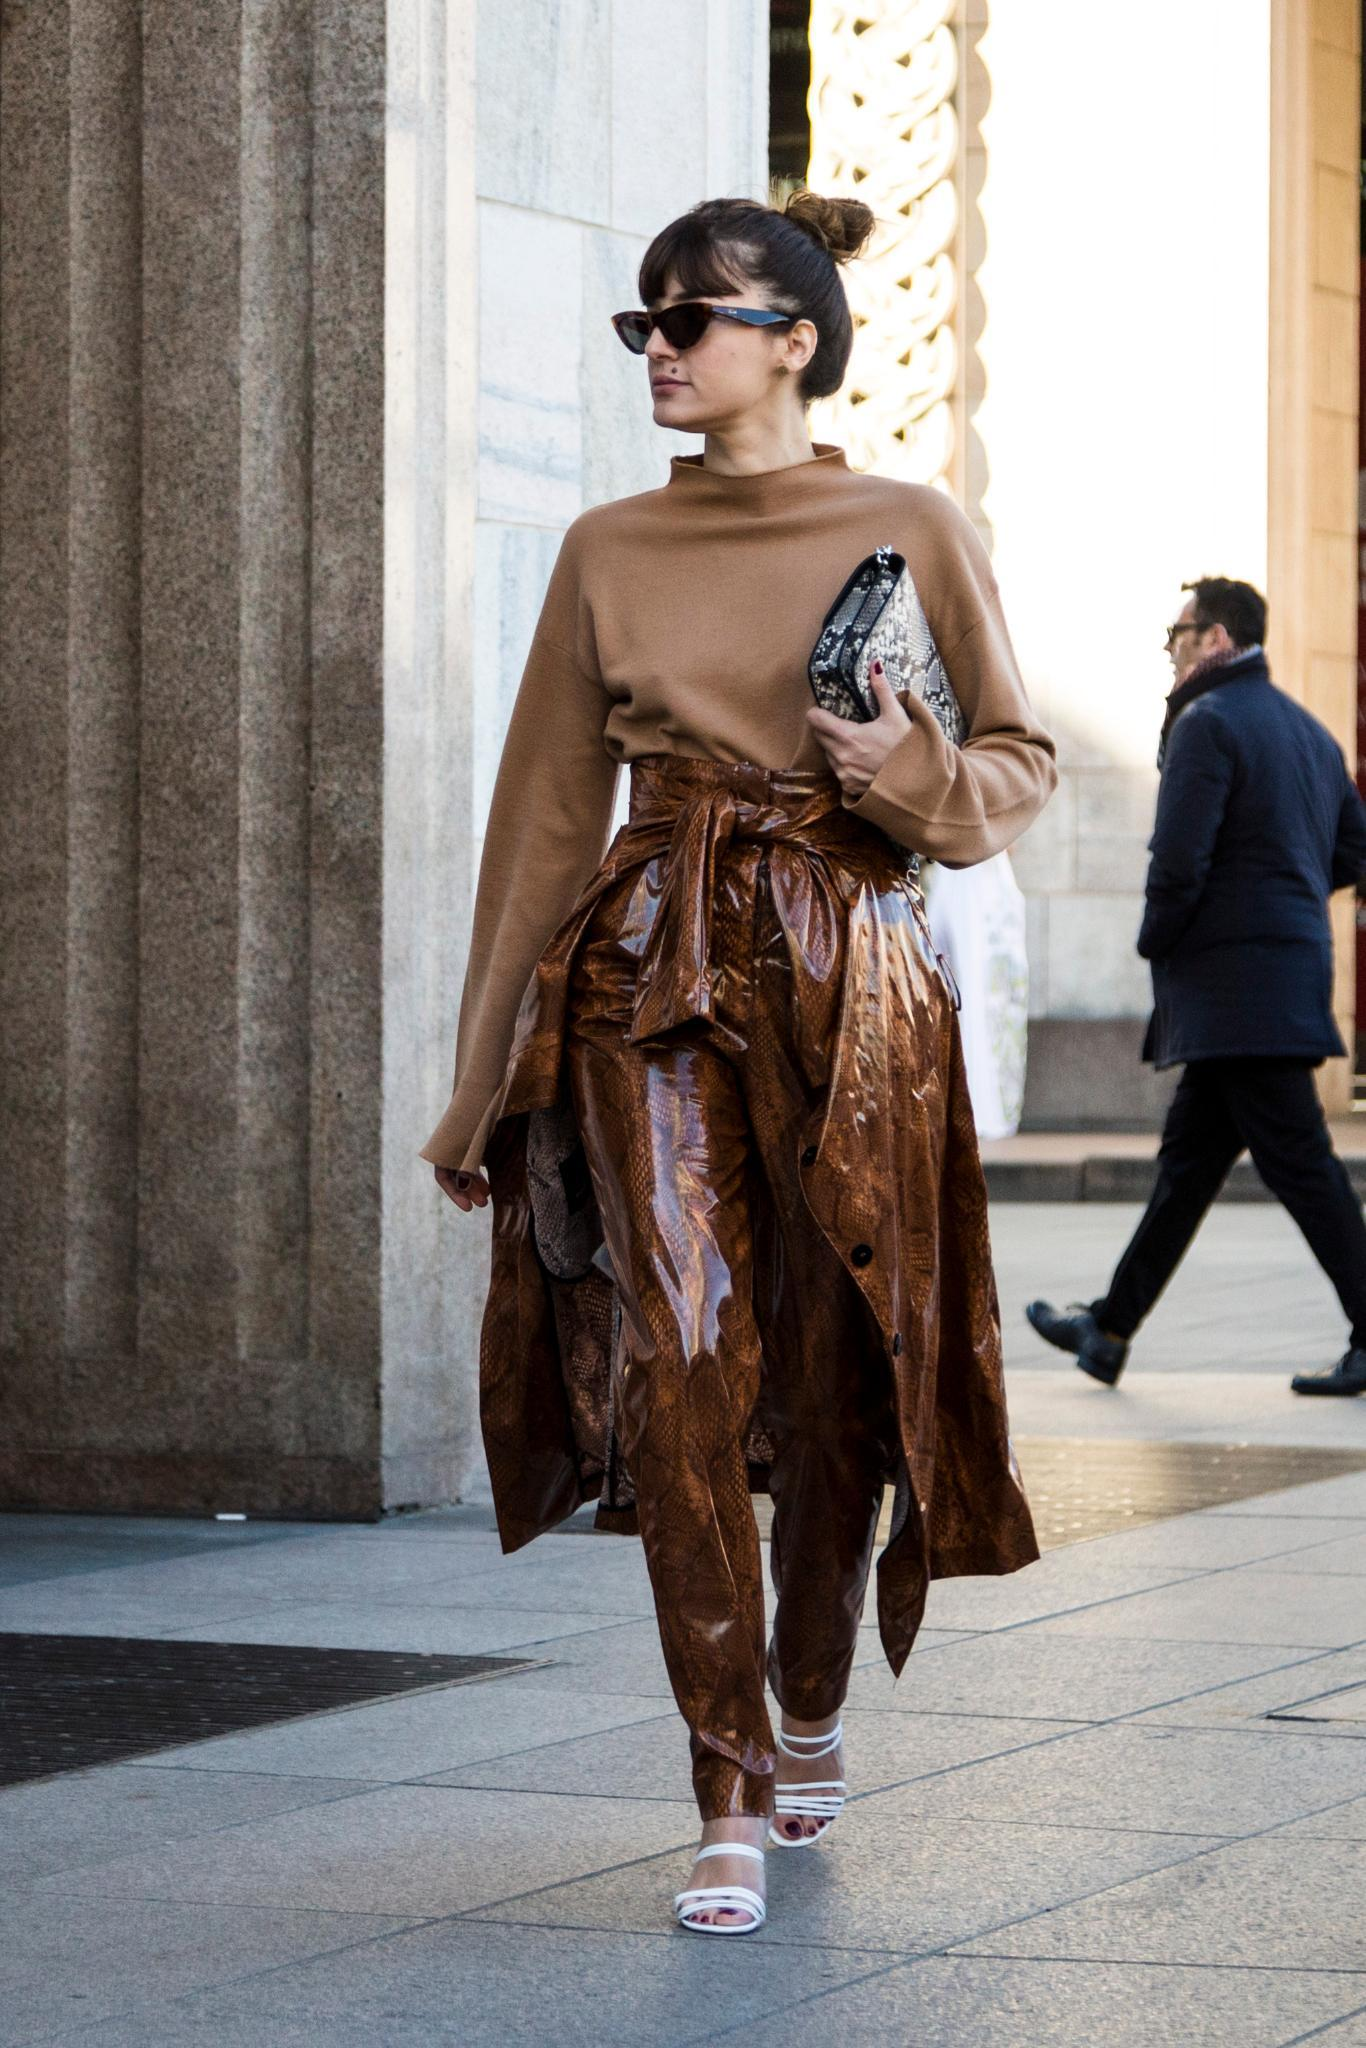 Milan Fashion Week Street Style: Woman with dark brown hair in high messy bun with full fringe bangs wearing all brown outfit holding a clutch bag.